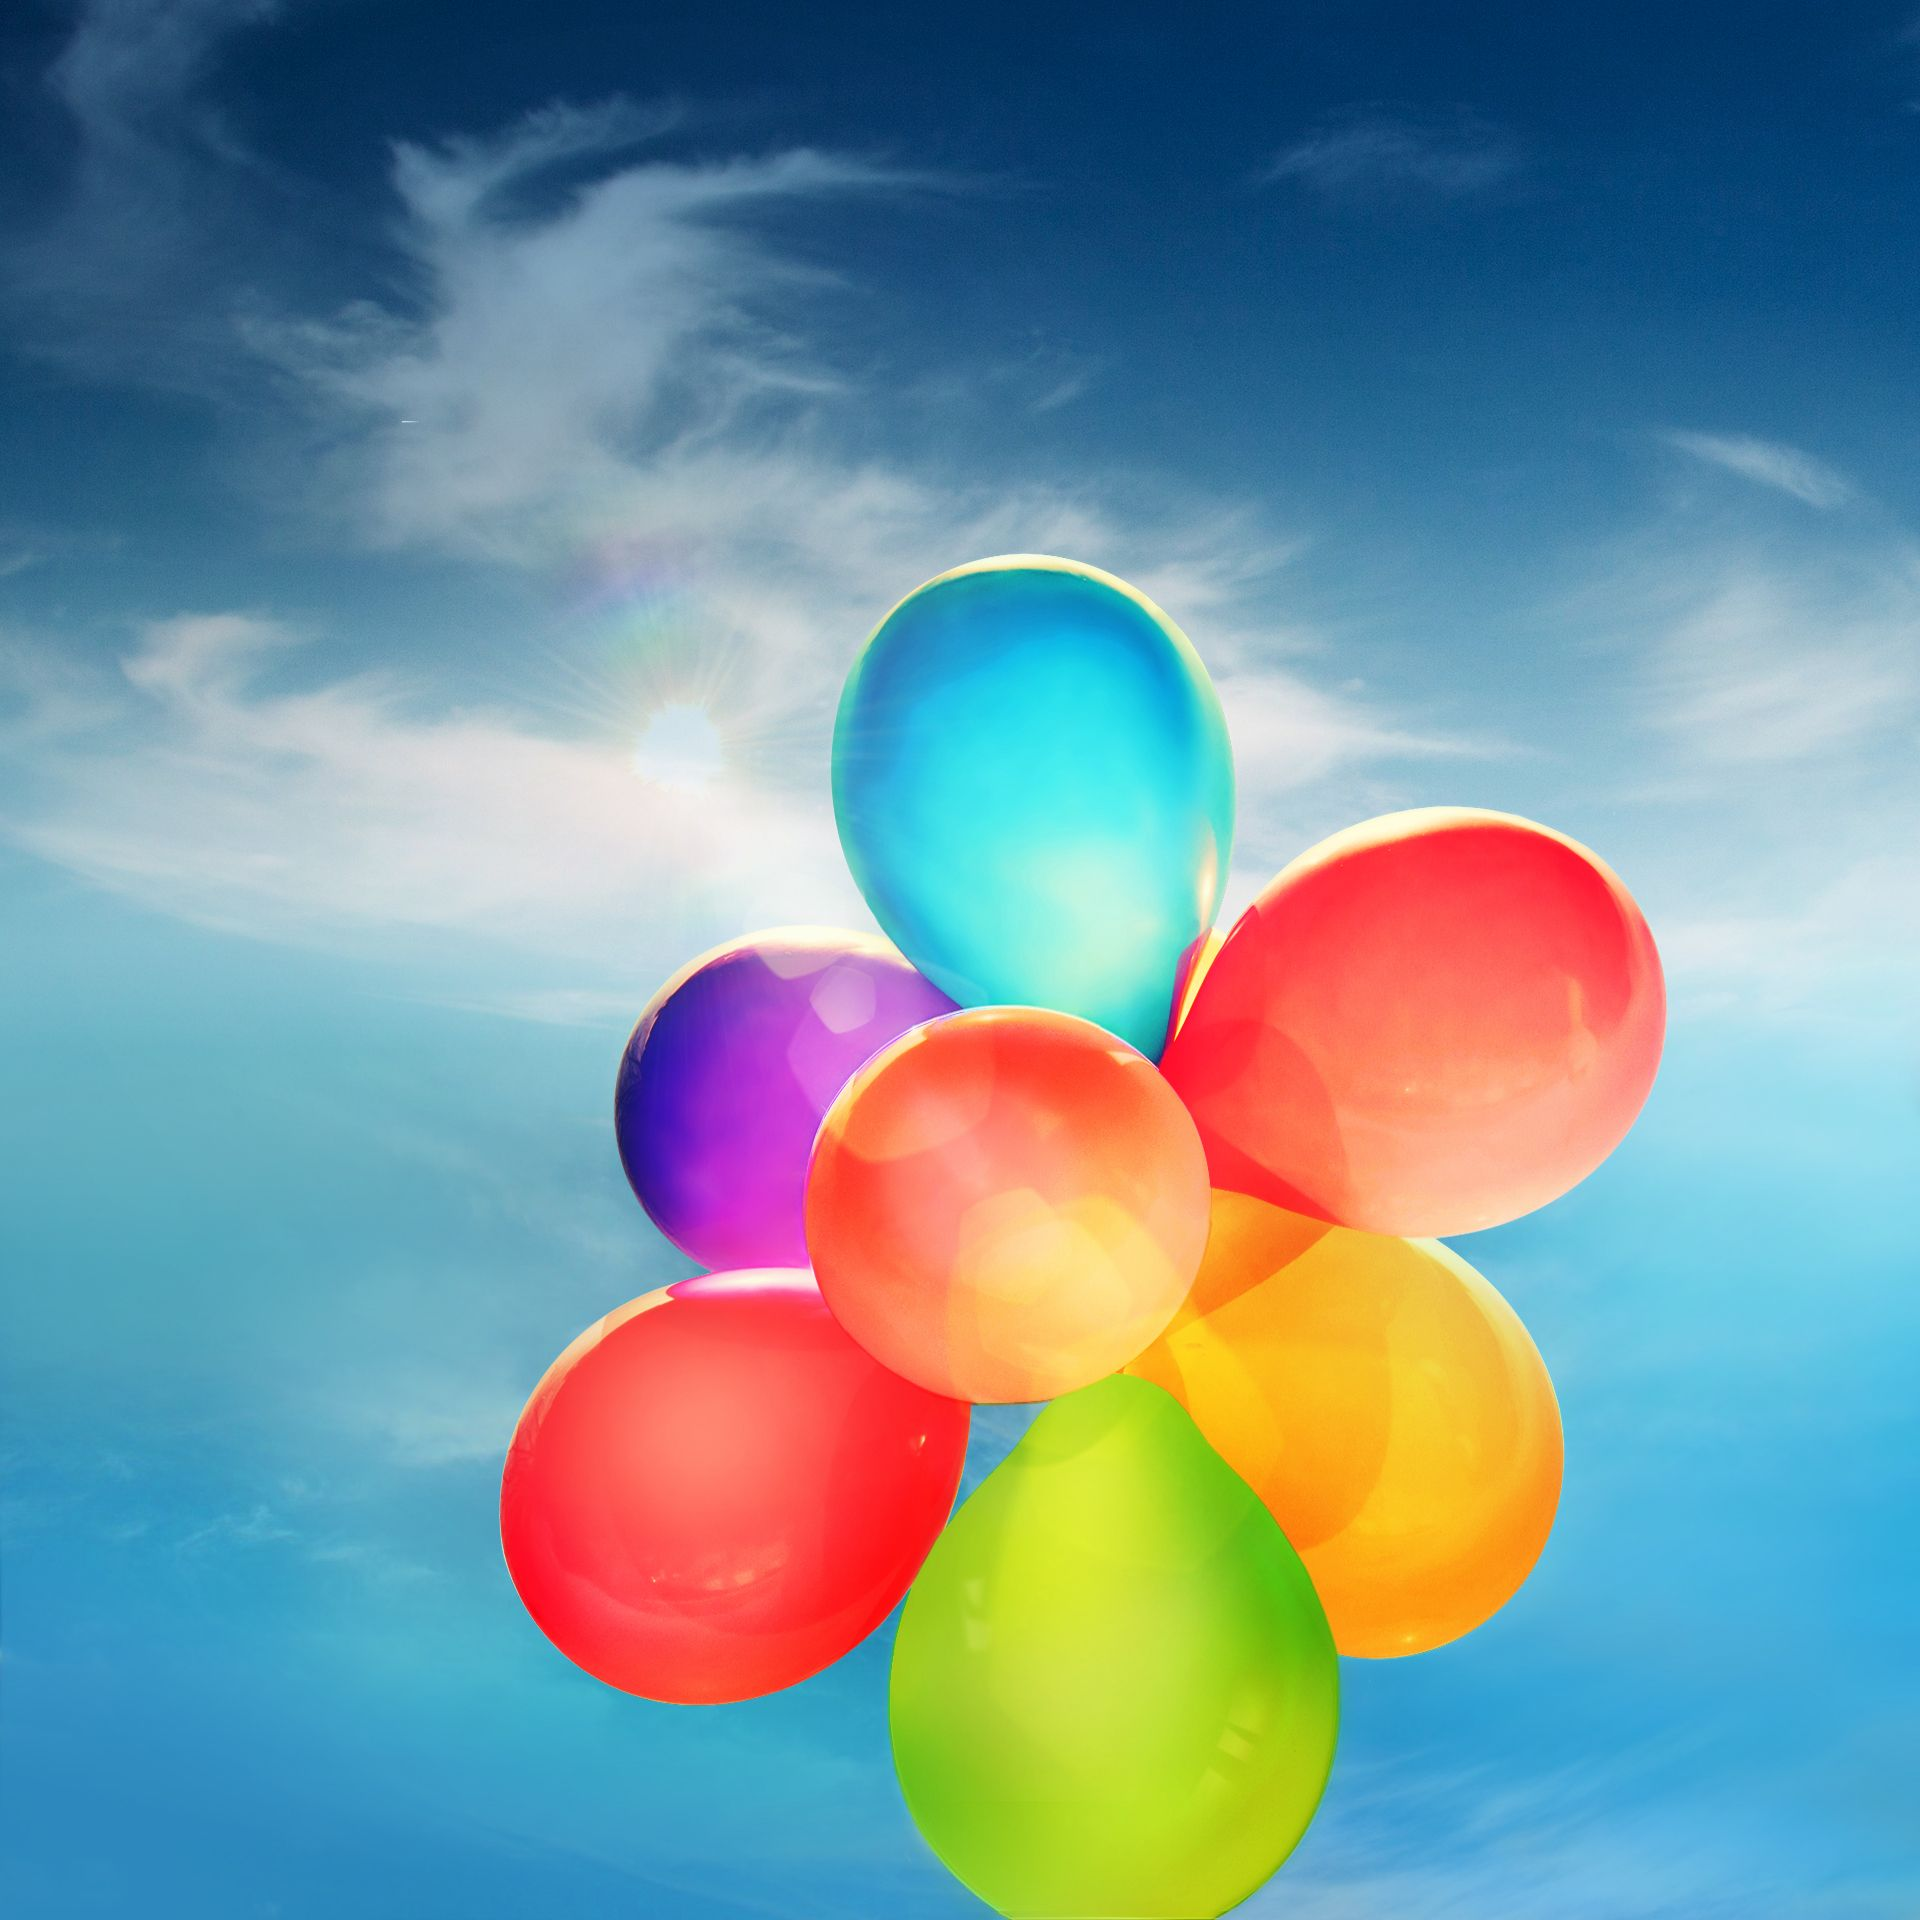 Samsung Galaxy S4 S Full Hd Wallpapers Download Samsung Galaxy News Samsung Galaxy Wallpaper Balloons Retina Wallpaper